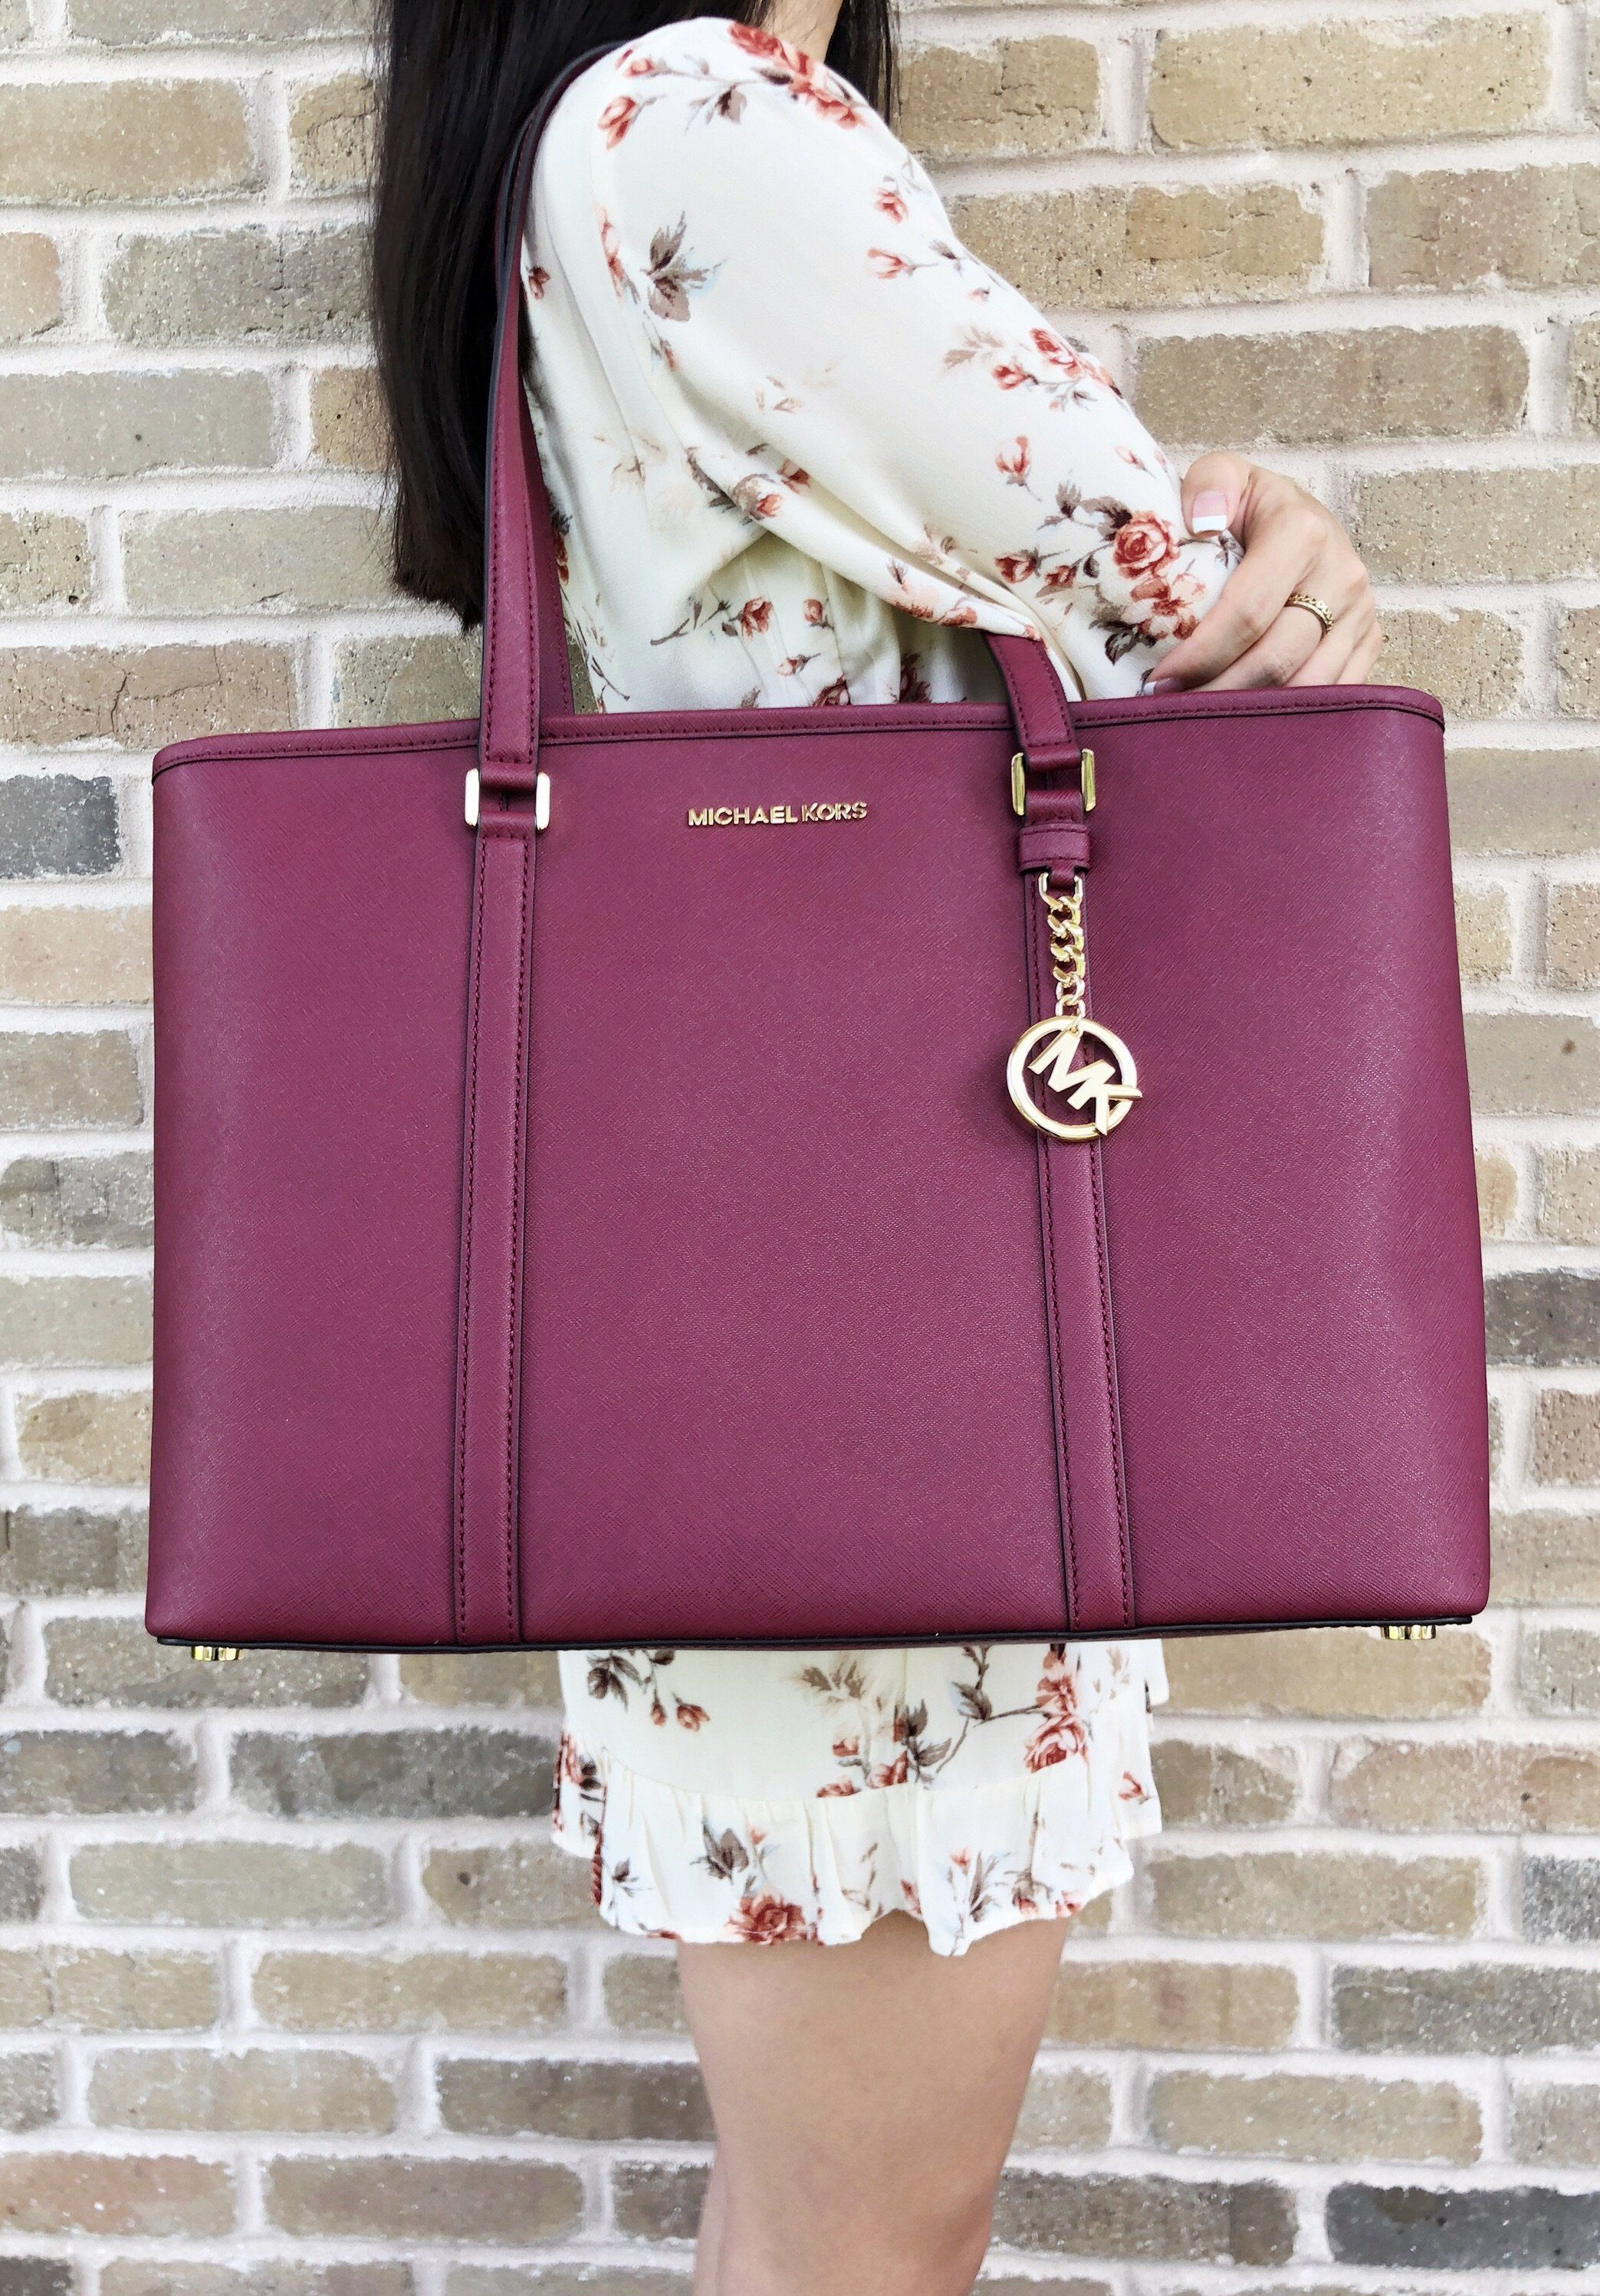 560dd55d37 Michael Kors Sady Large Multifunctional Top Zip Tote Mulberry Laptop Bag   MichaelKors  MK  Handbags